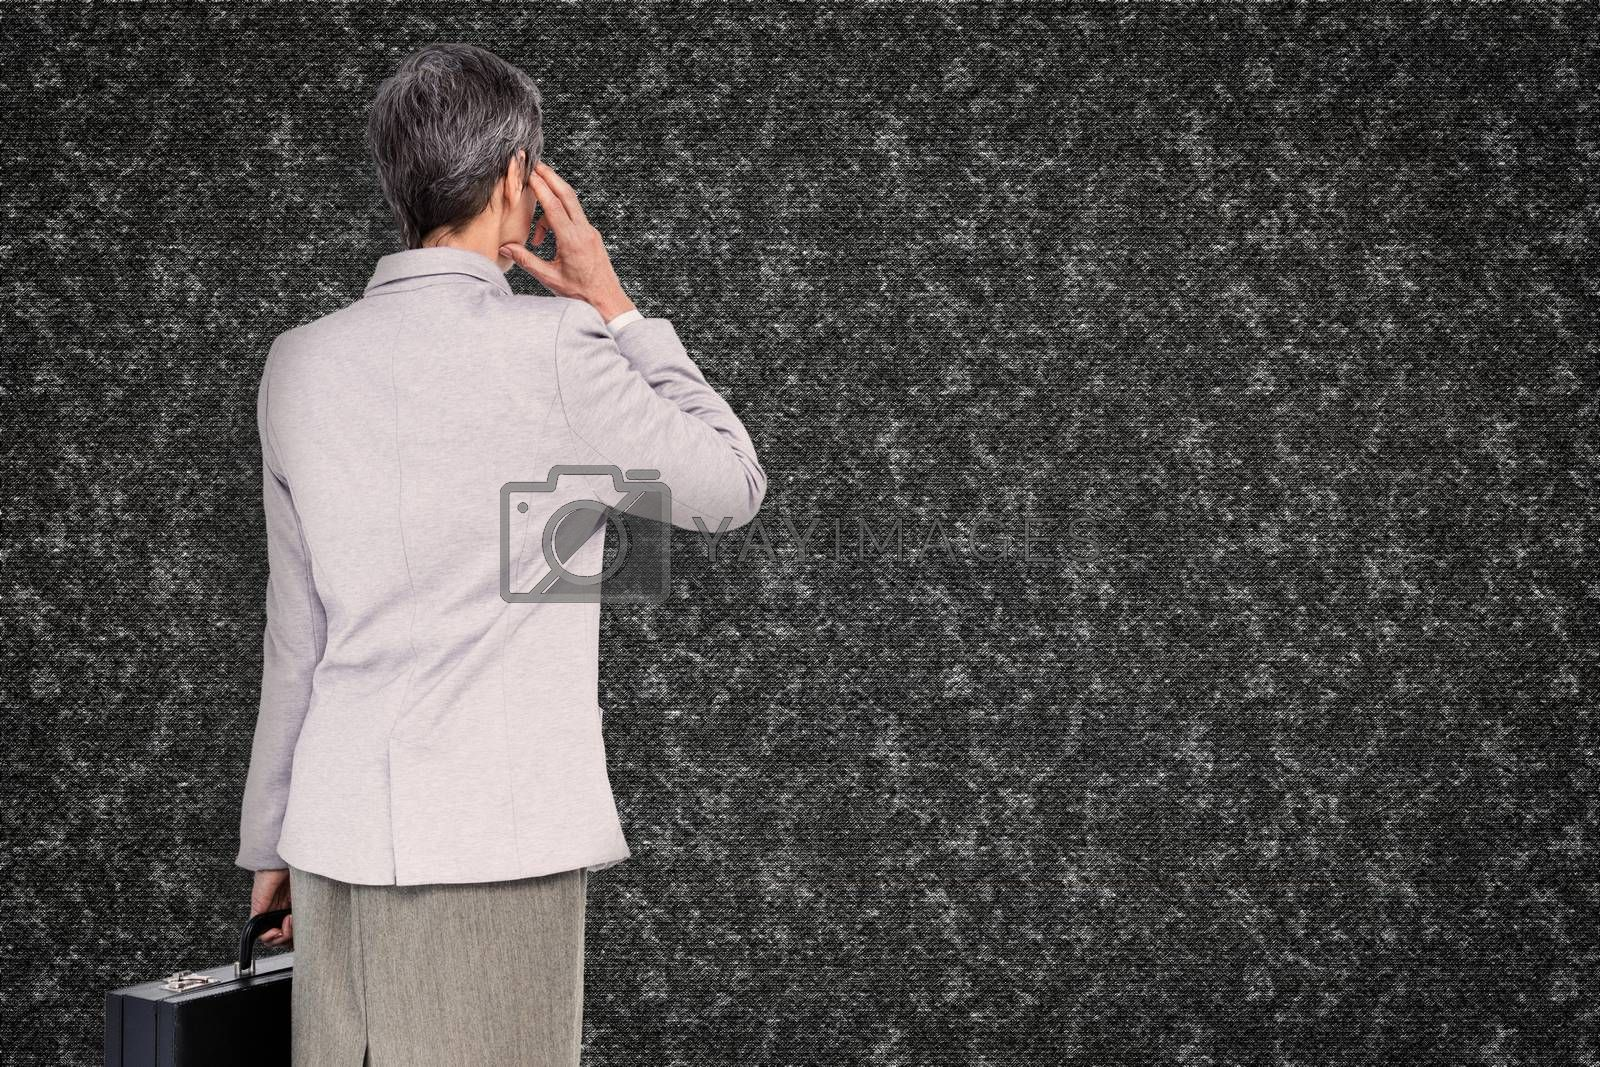 Businesswoman on the phone against black background